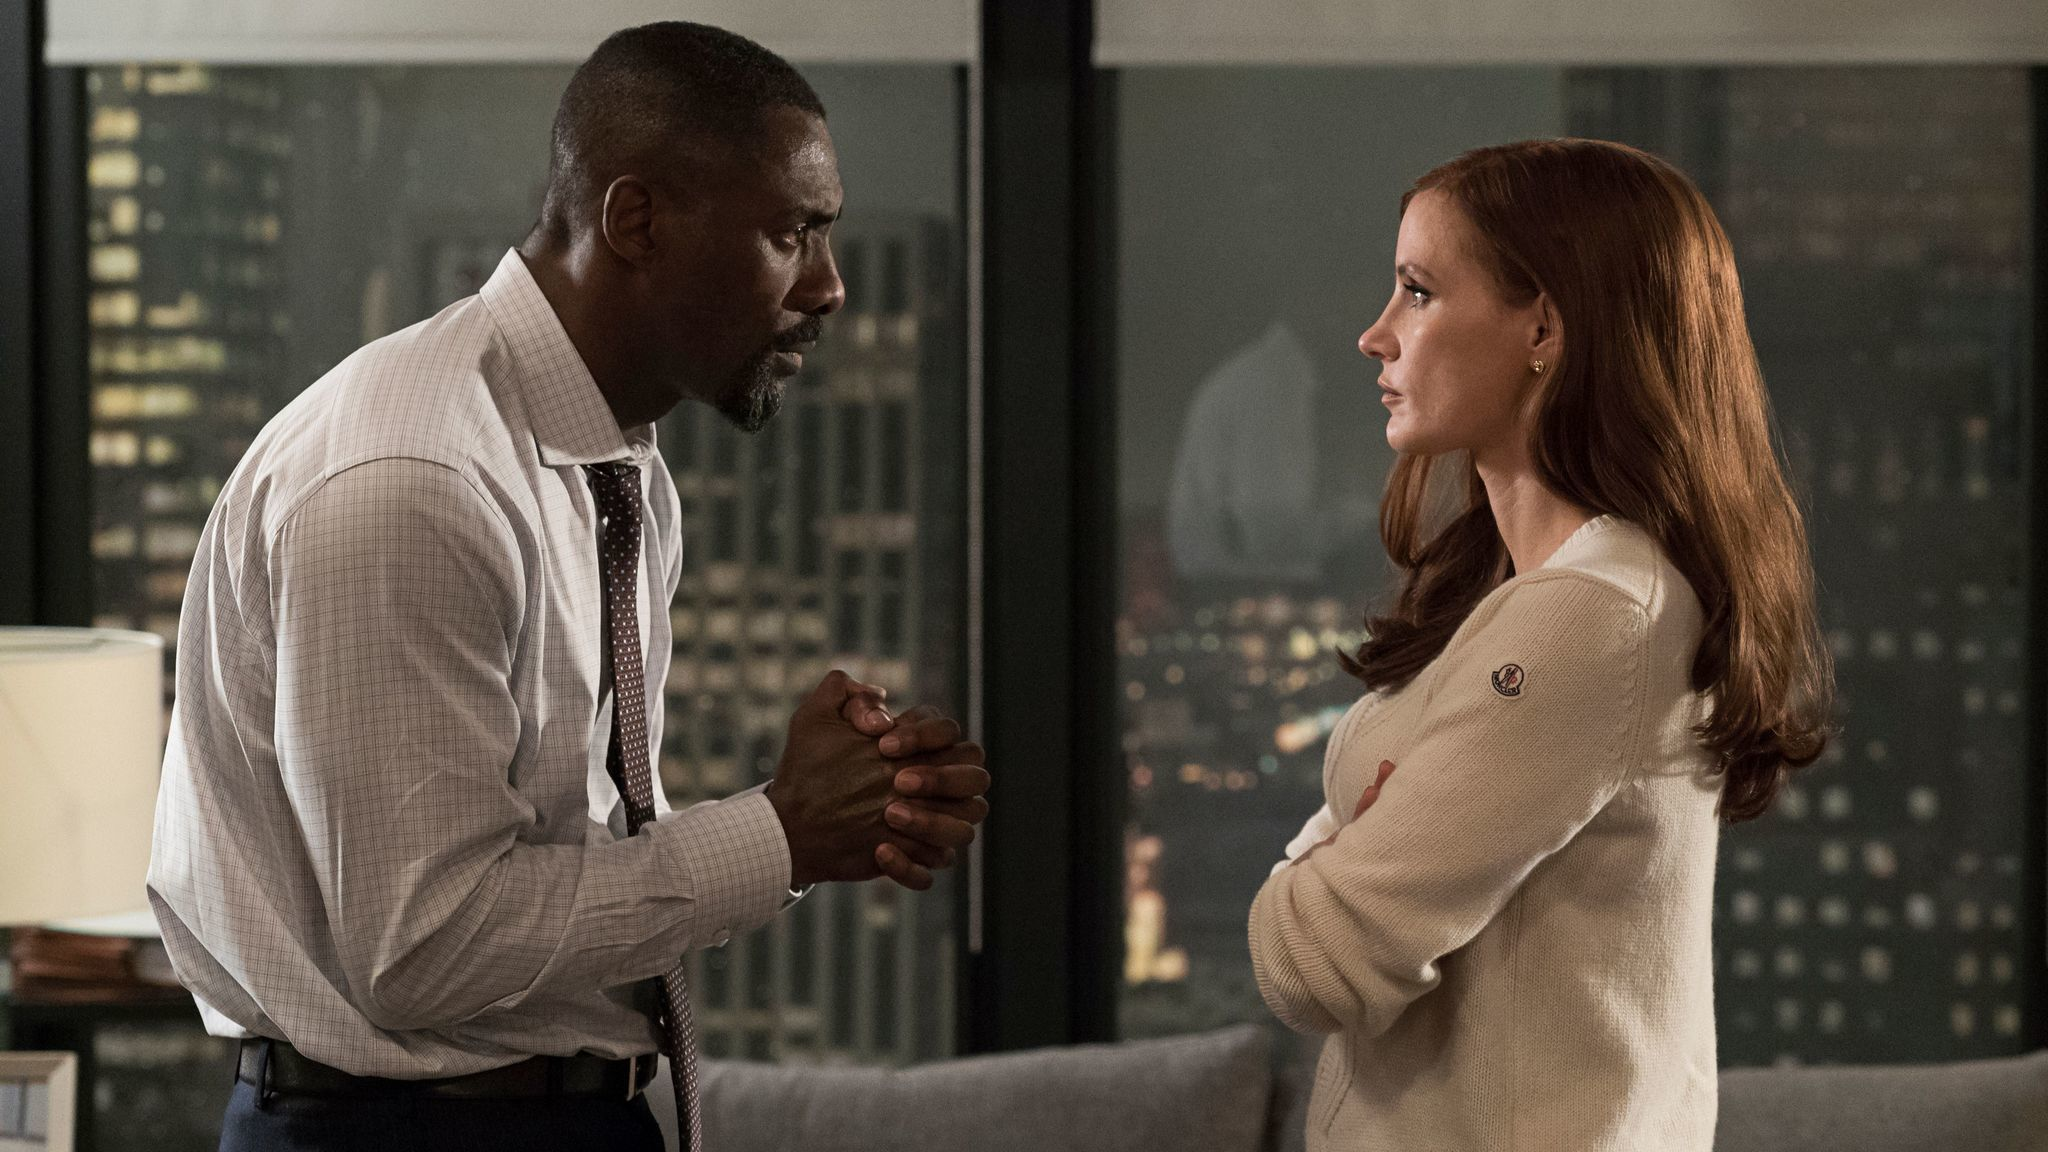 Charlie Jaffe (Idris Elba) and Molly Bloom (Jessica Chastain) in